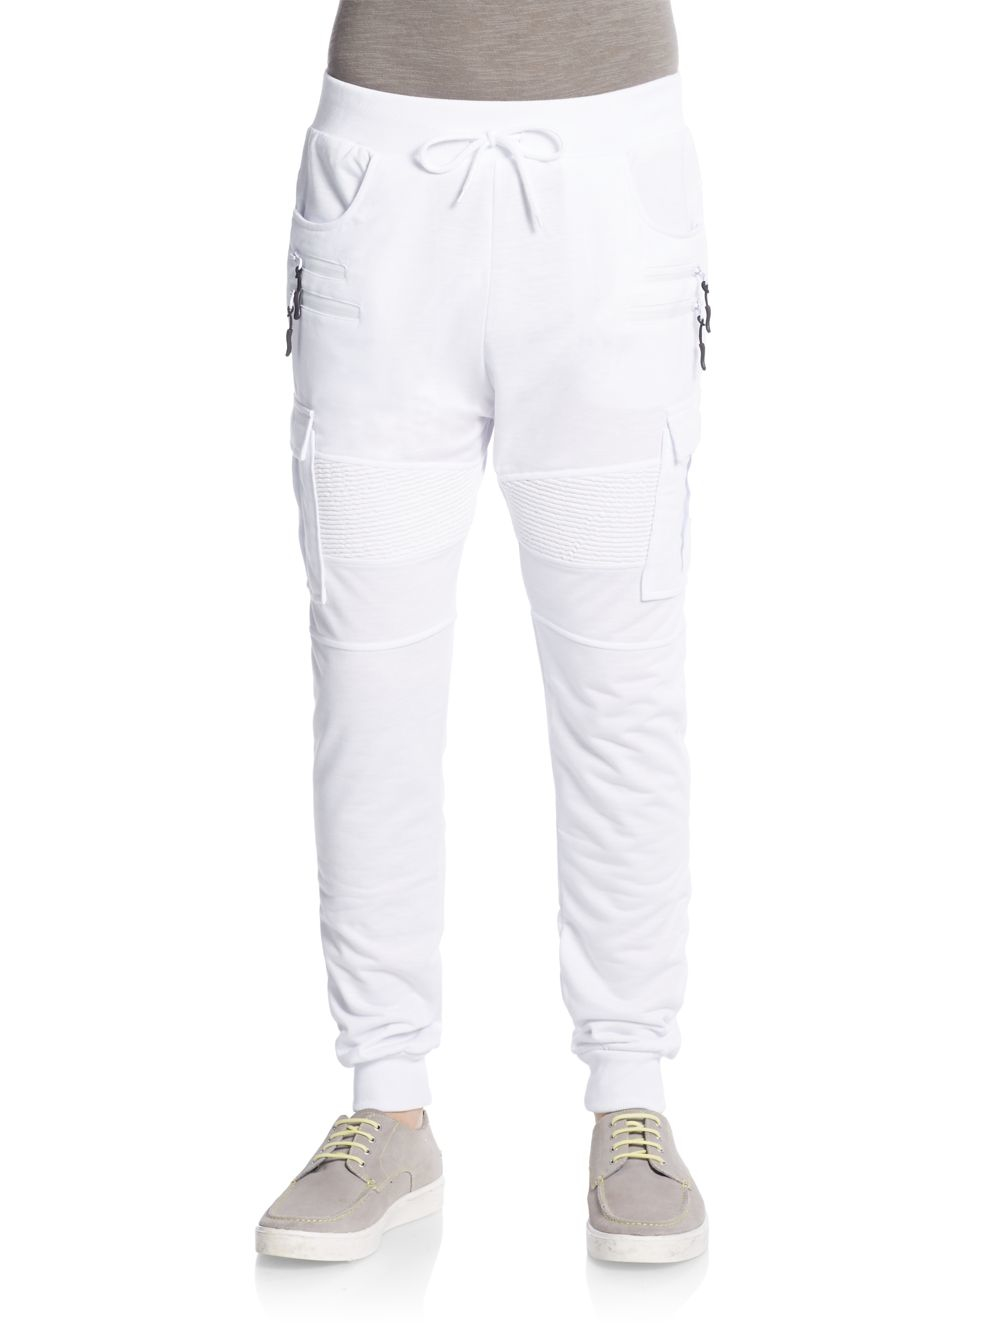 Find great deals on eBay for womens white jogging pants. Shop with confidence.